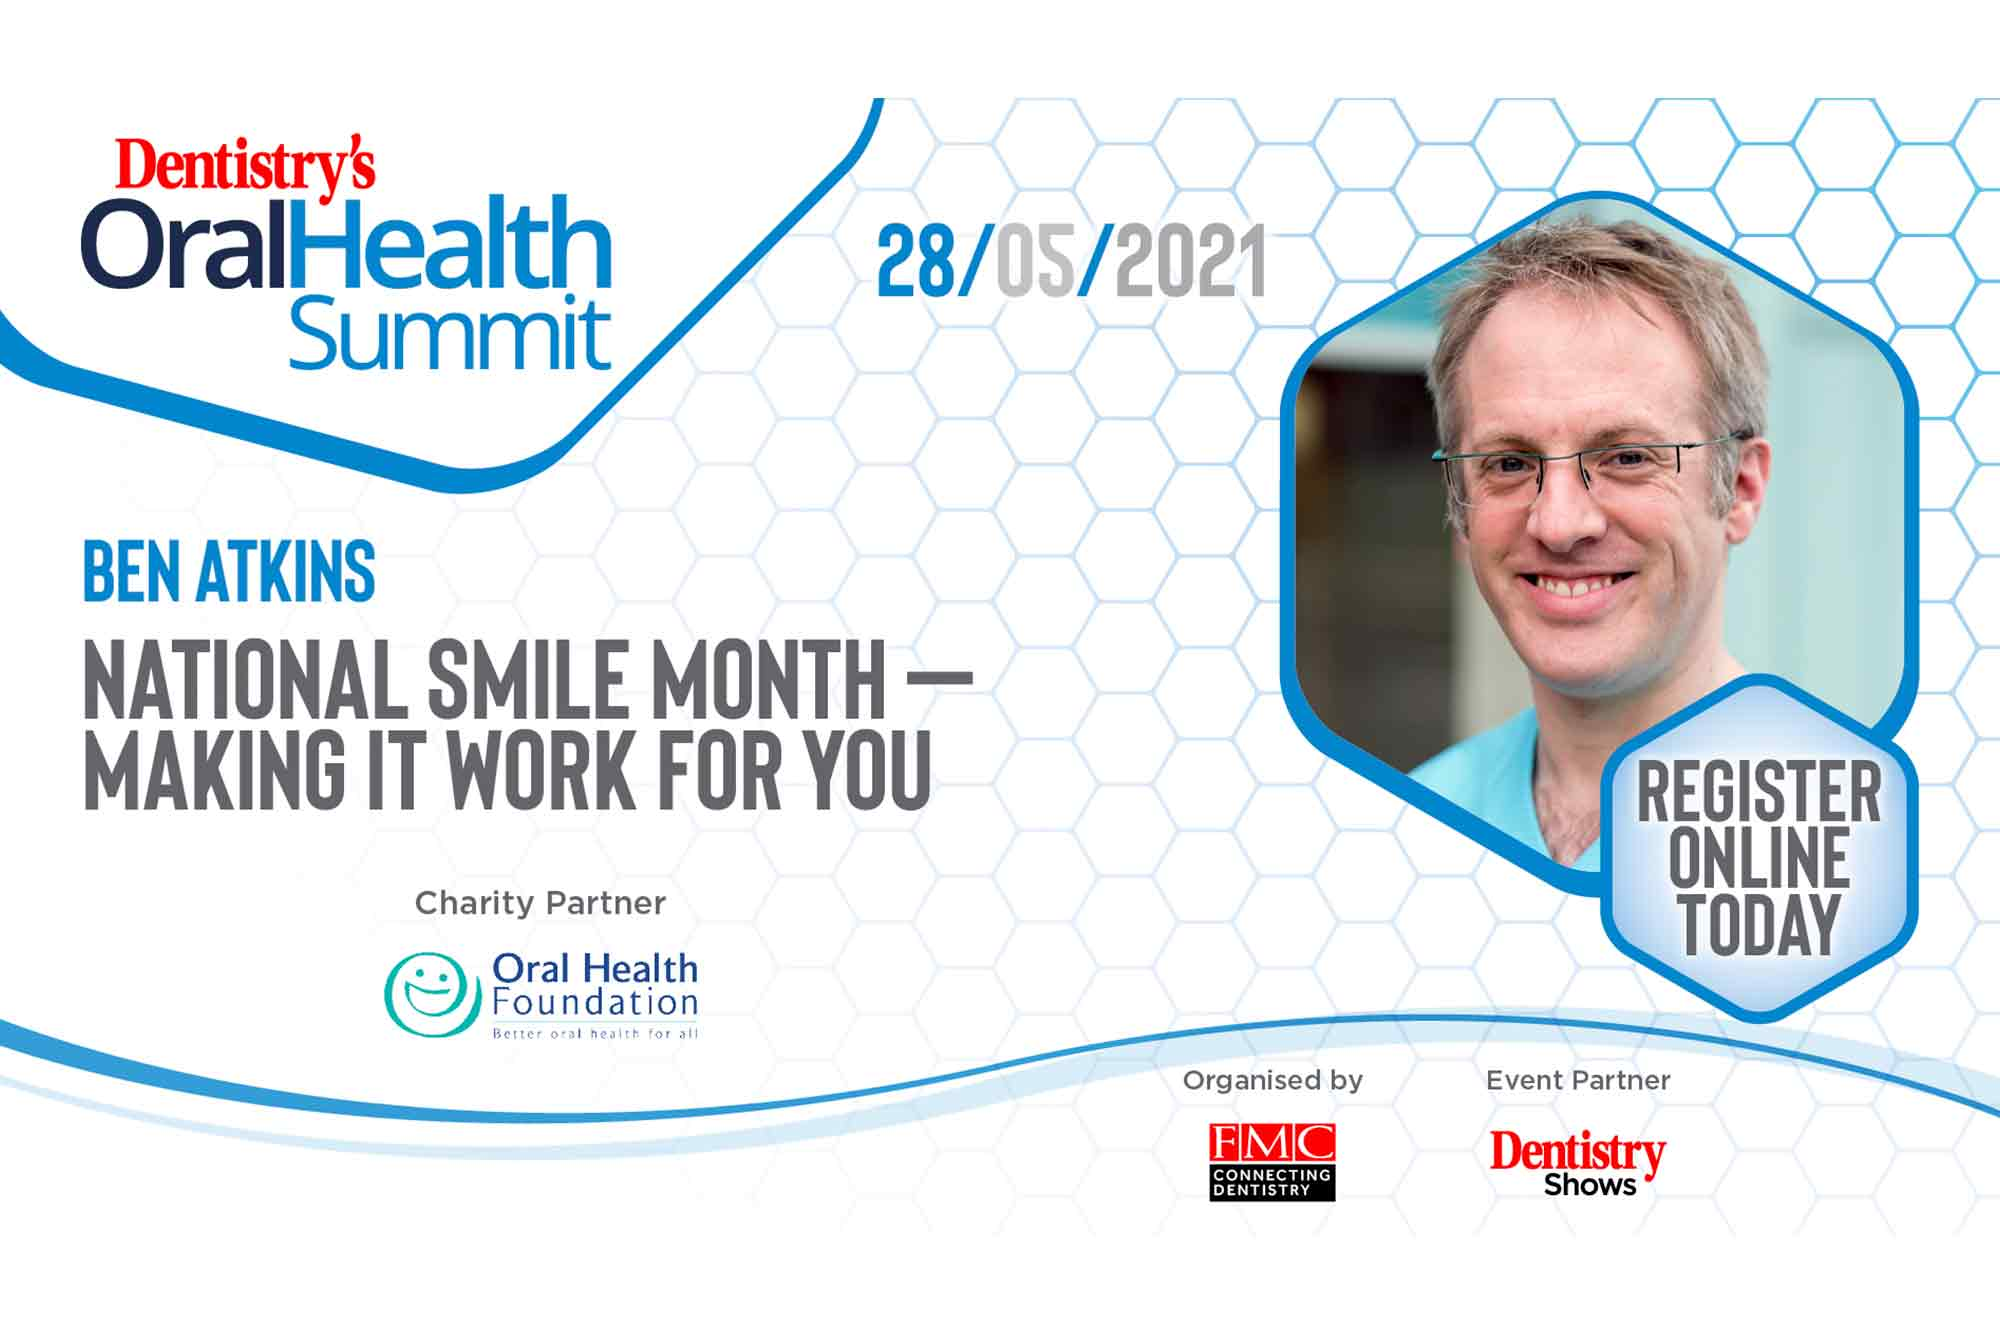 Dr Ben Atkins will discuss how to use oral hygiene to reduce stress in everyday practice at the first ever Oral Health Summit